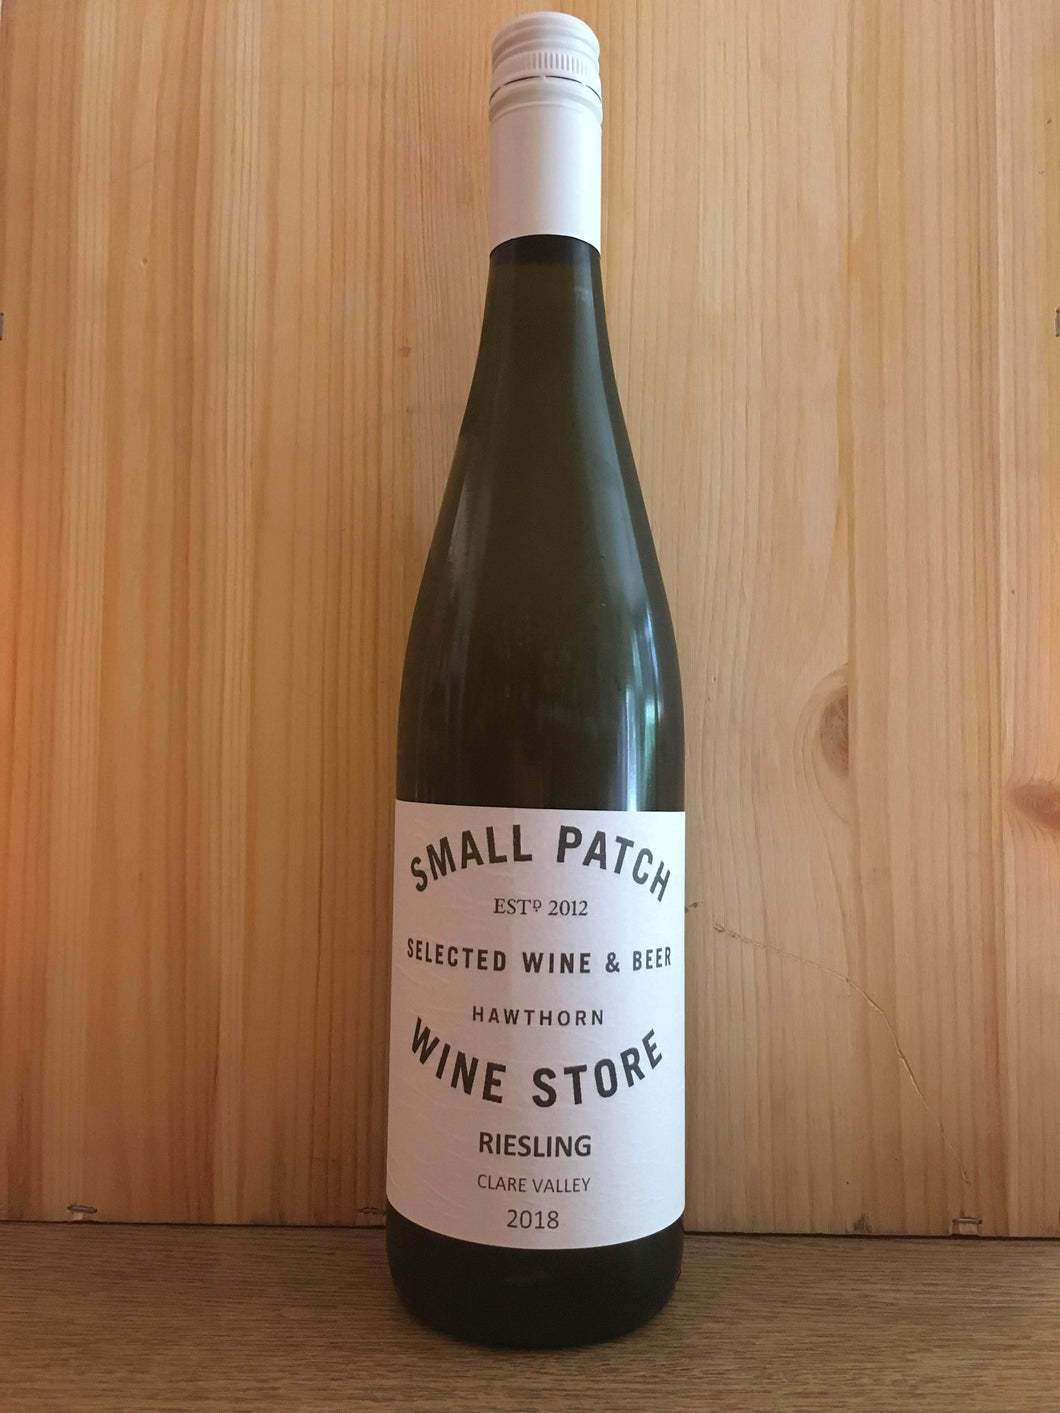 Small Patch Riesling Clare Valley 2018